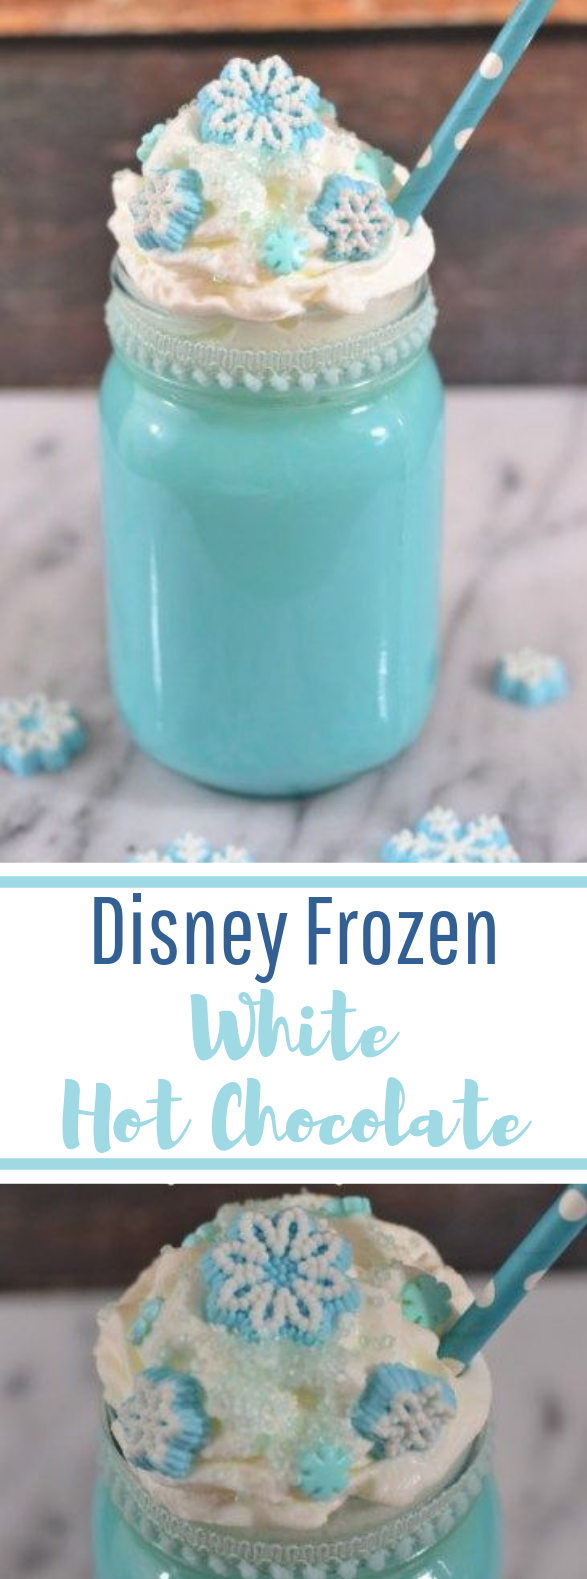 Disney's Frozen White Hot Chocolate #easy #drinks